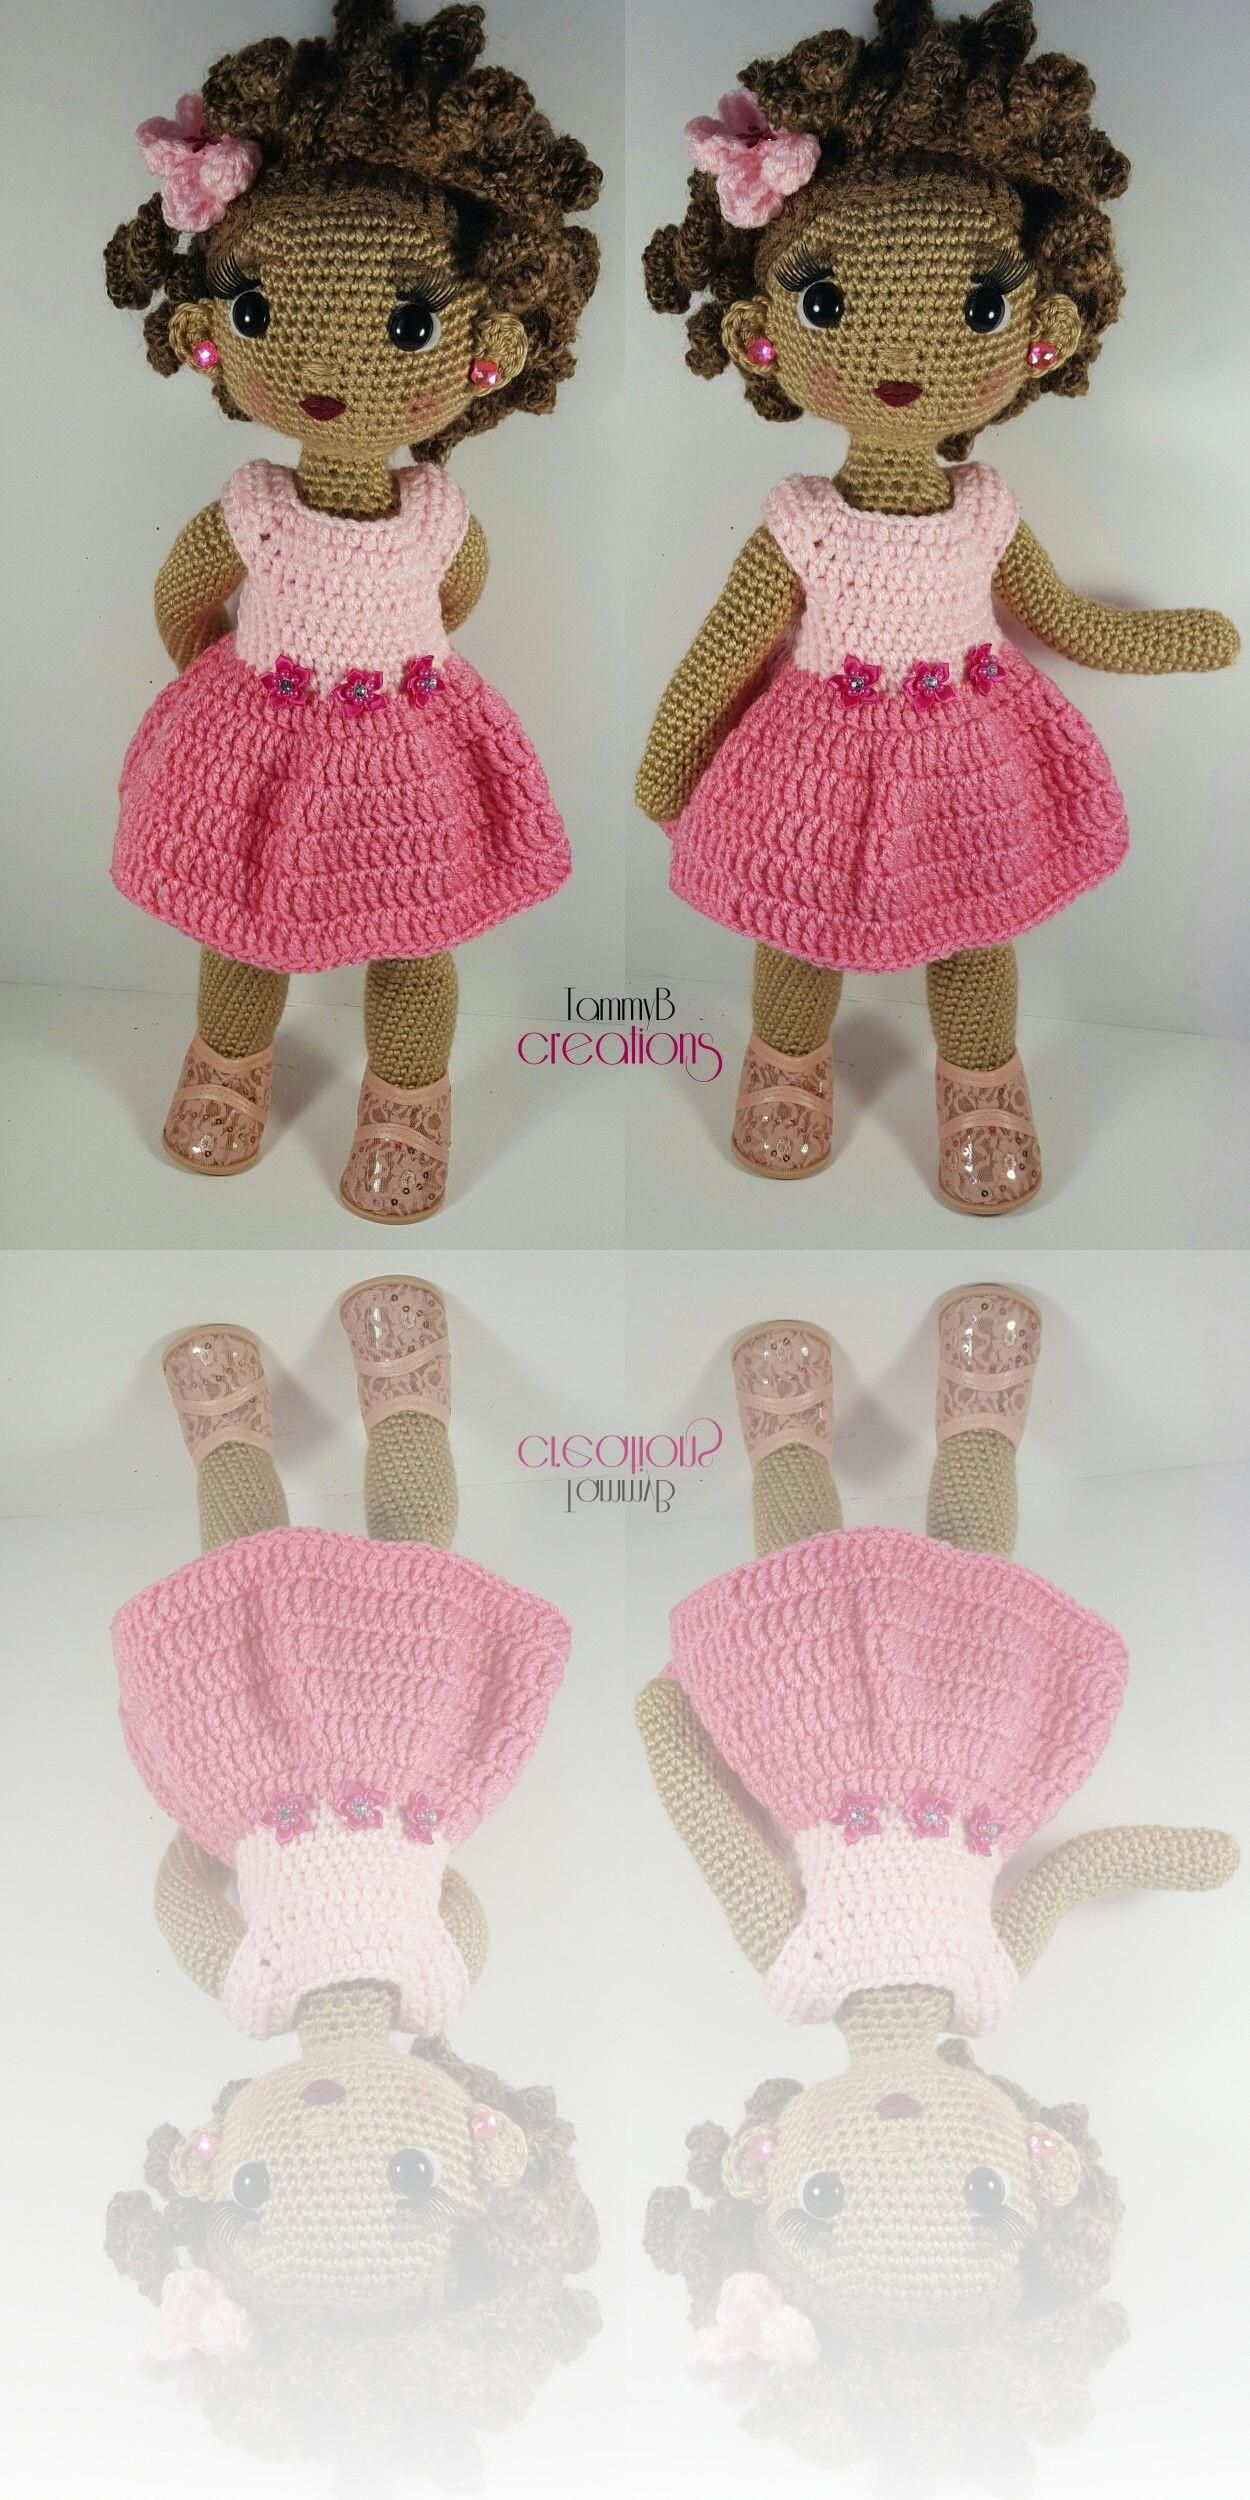 Crochet Pattern - Customizable Doll With Lots of Extras · Petals ... | 2500x1250